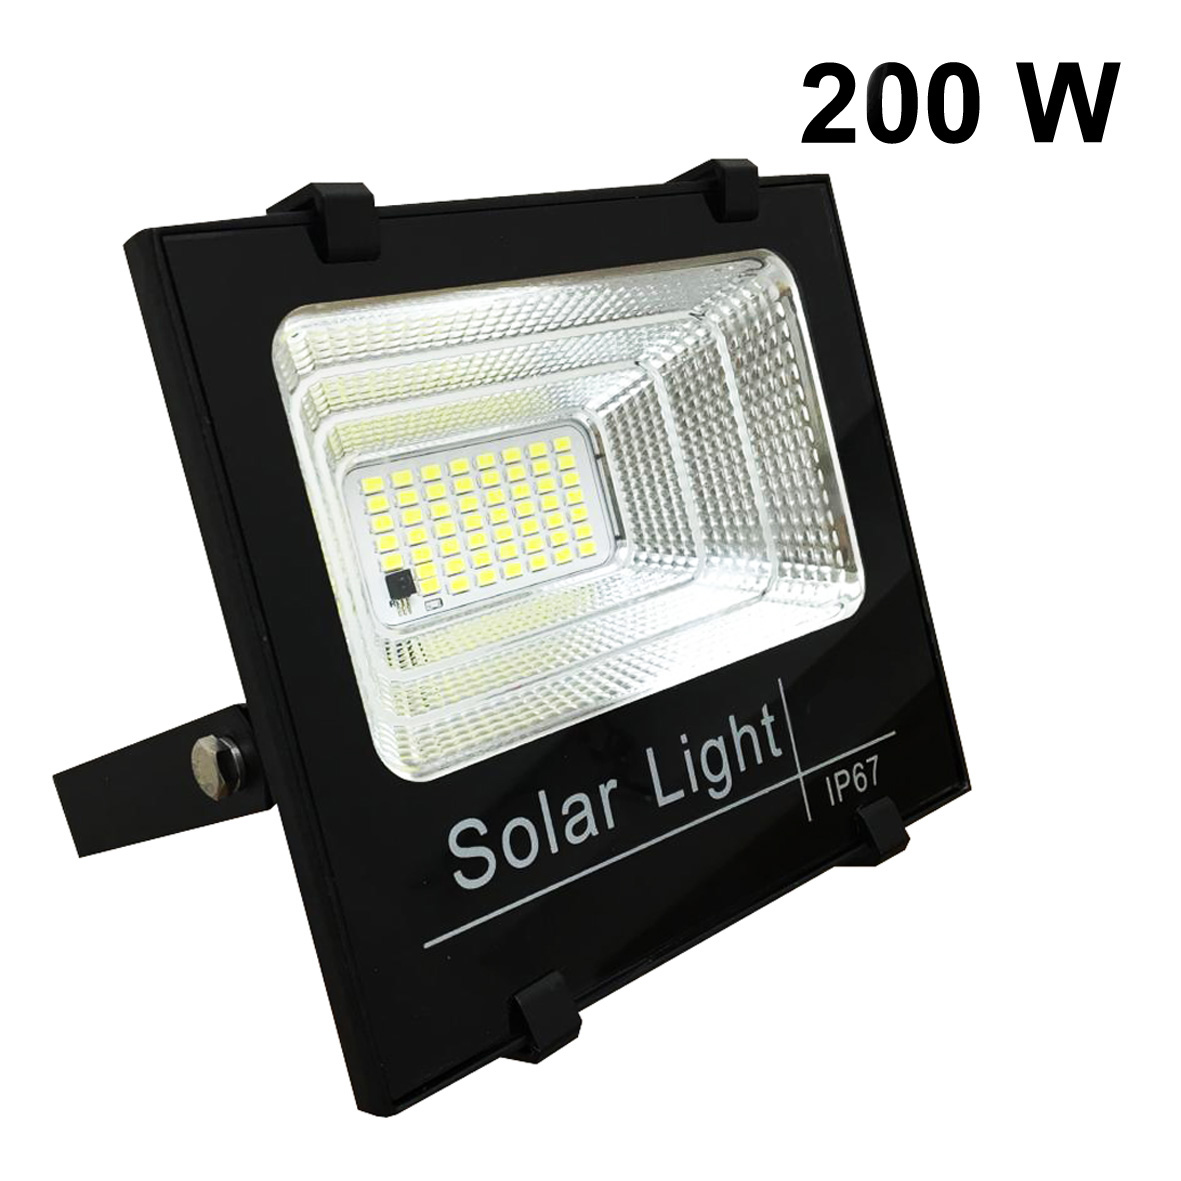 Projector Headlight-energy 100w solar with a solar panel included-DIMMABLE